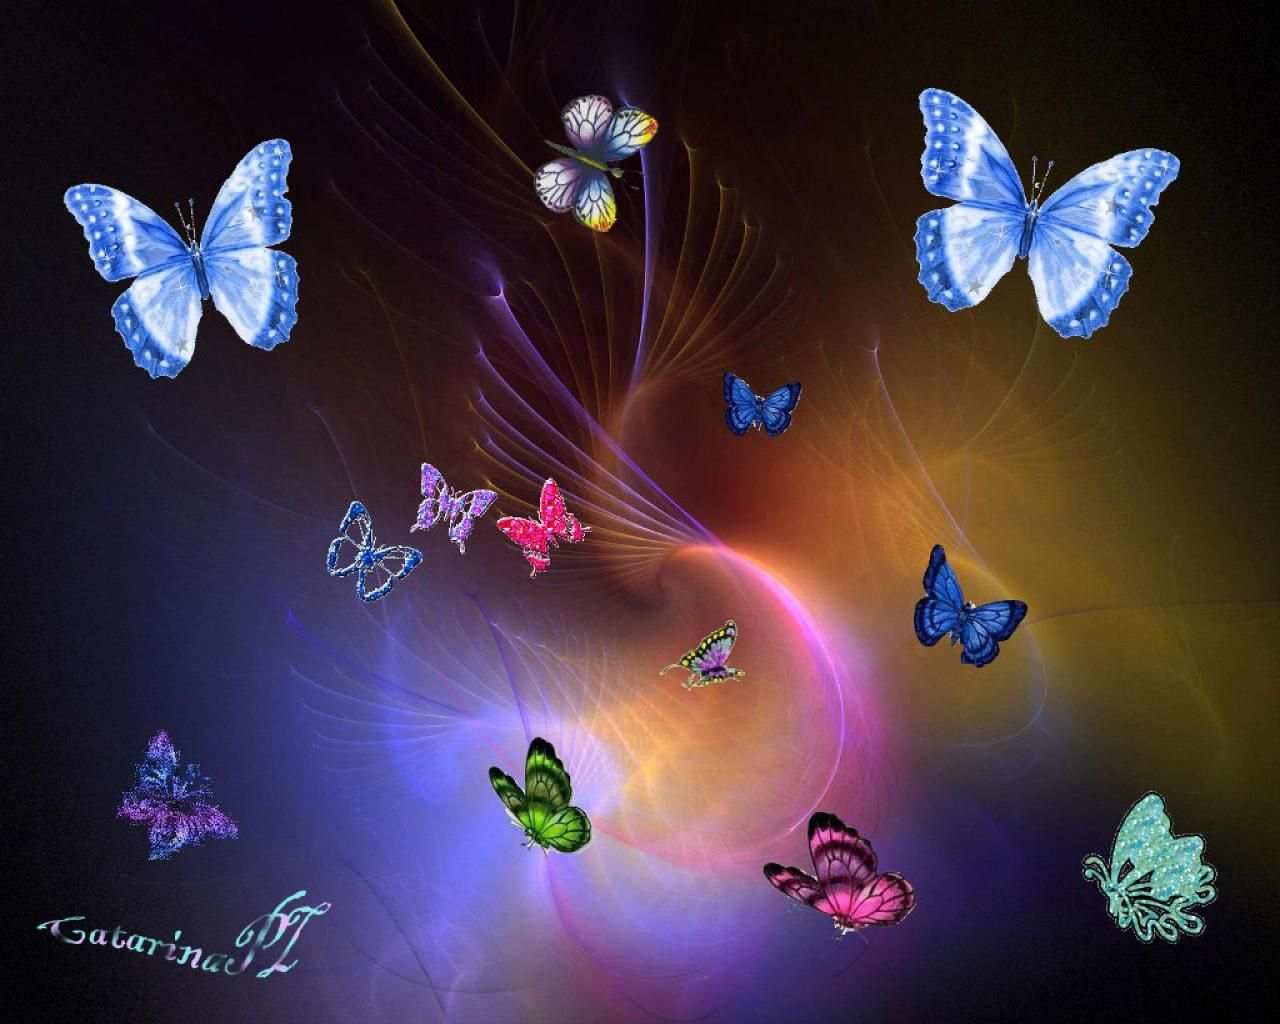 Fantasy butterfly backgrounds Download HD Colorful 1280x1024